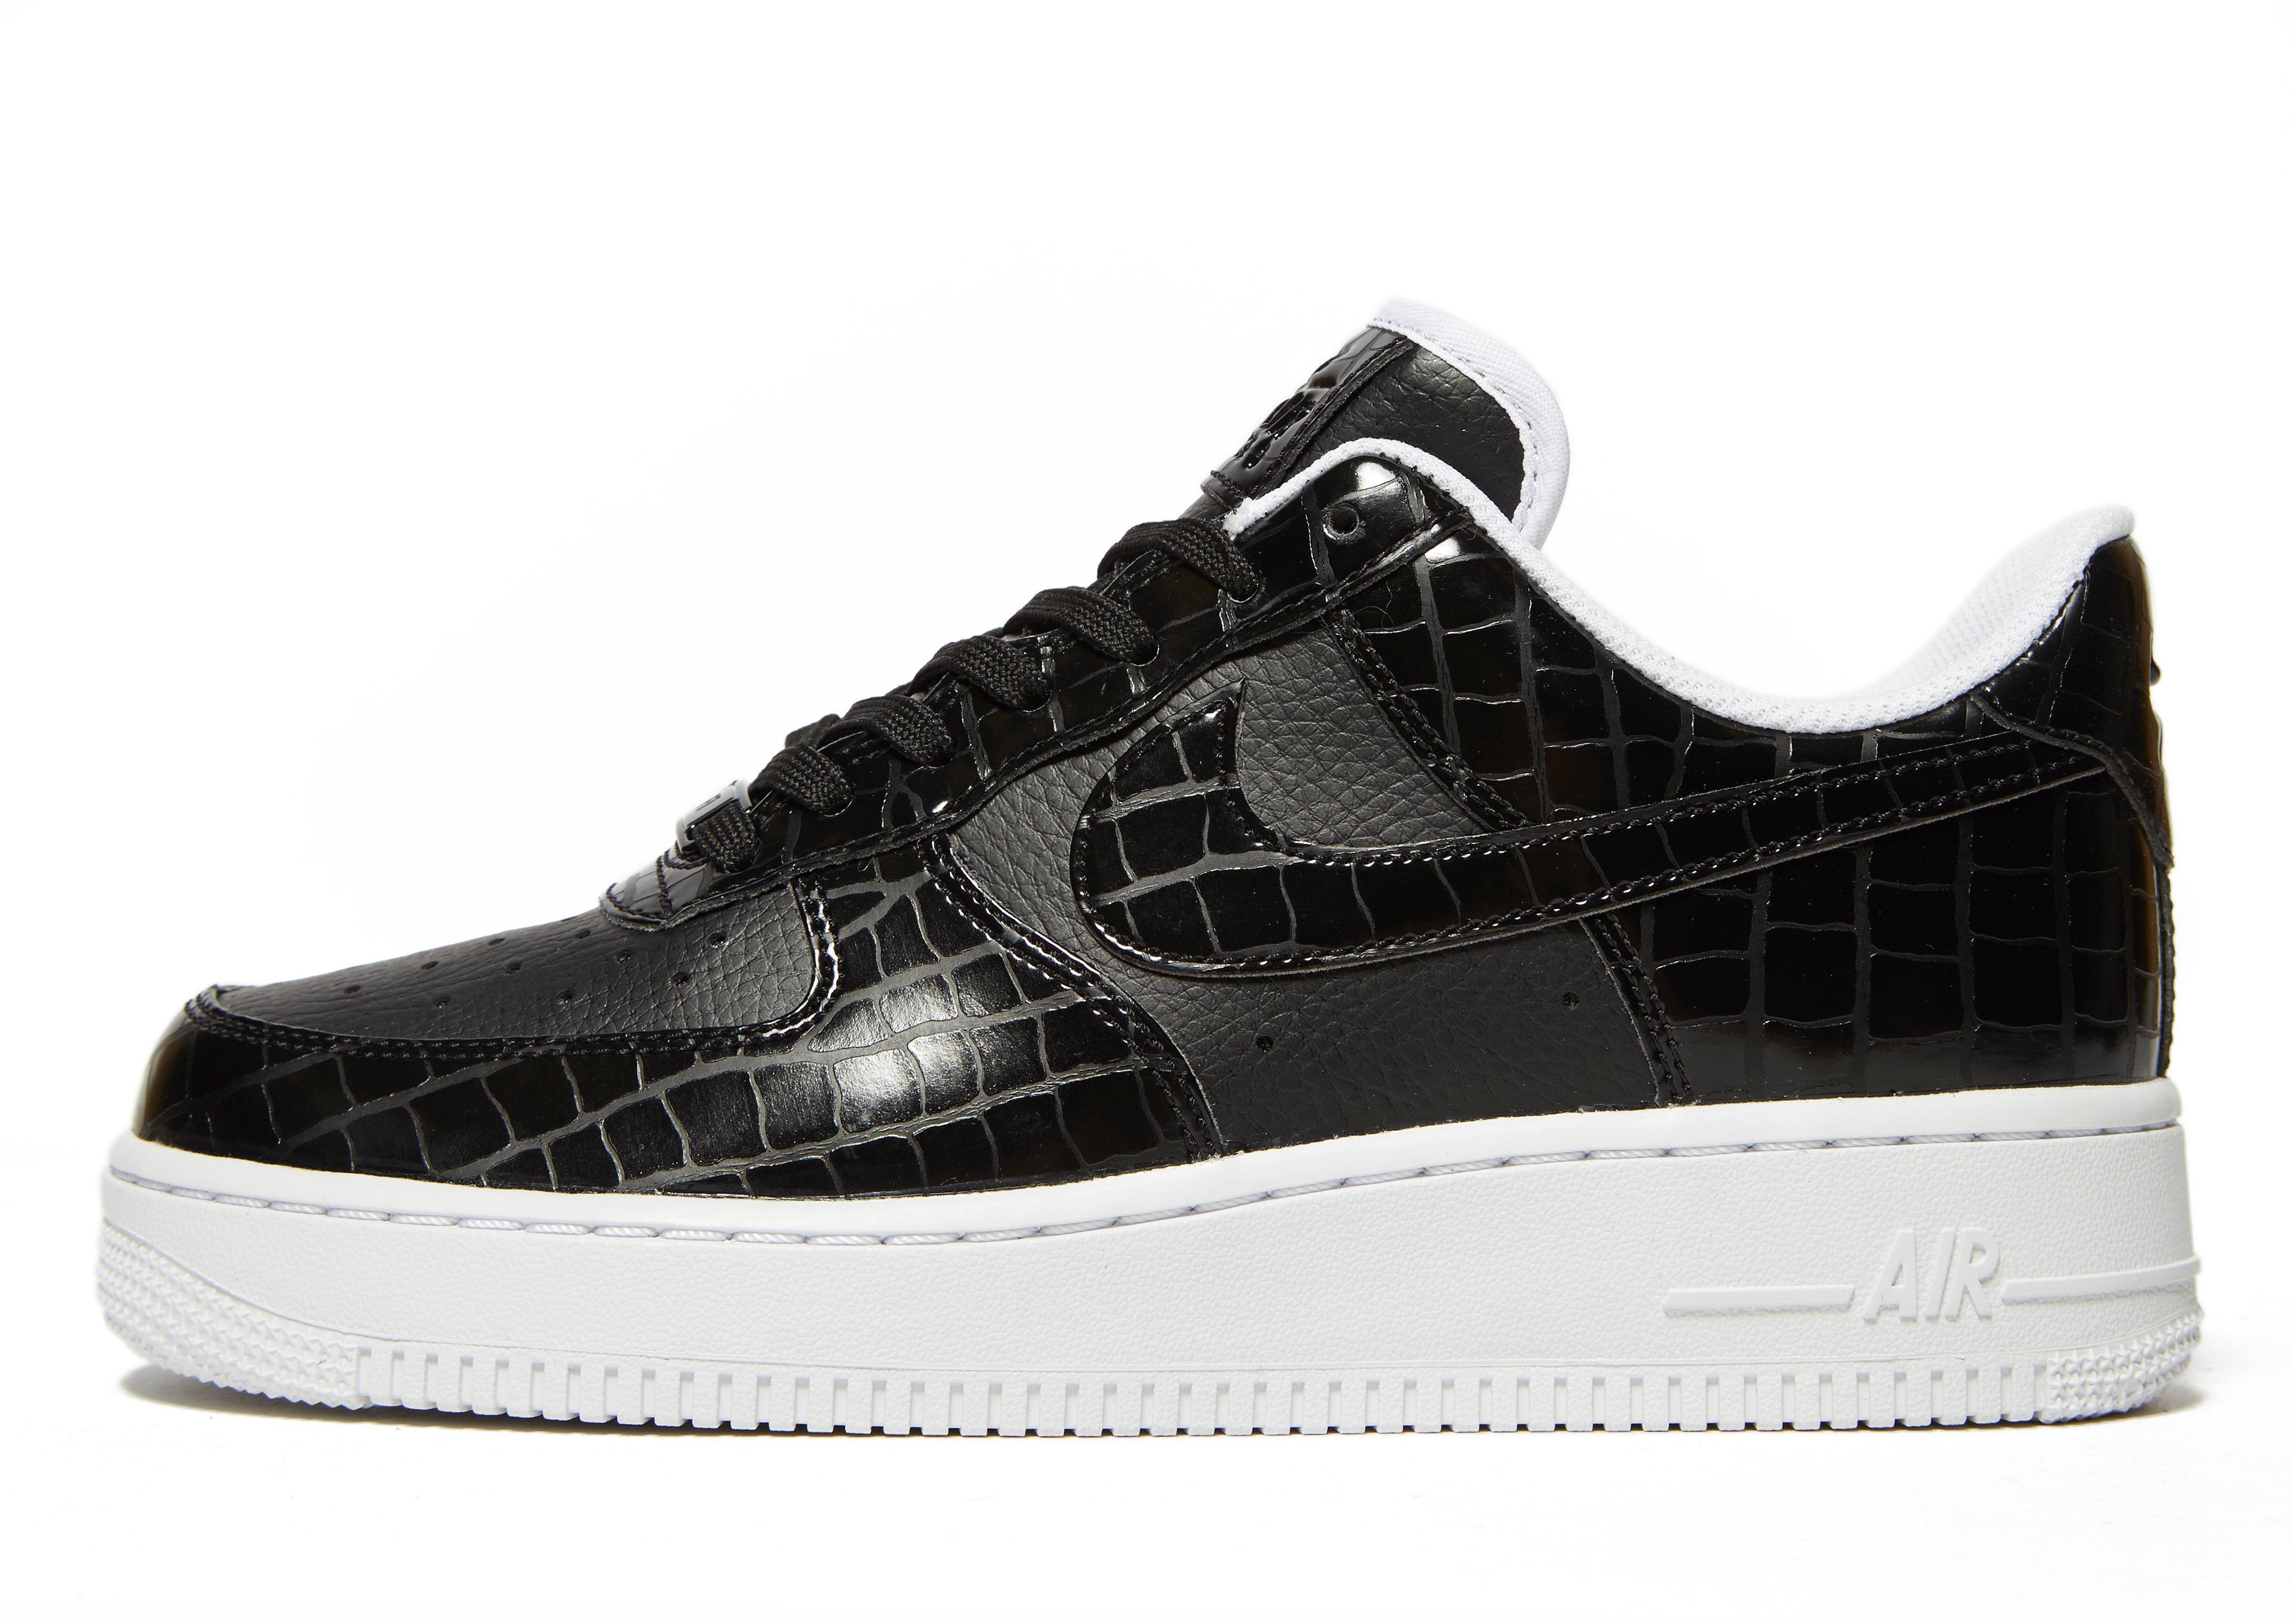 nike air force 1 low black and white reptile images